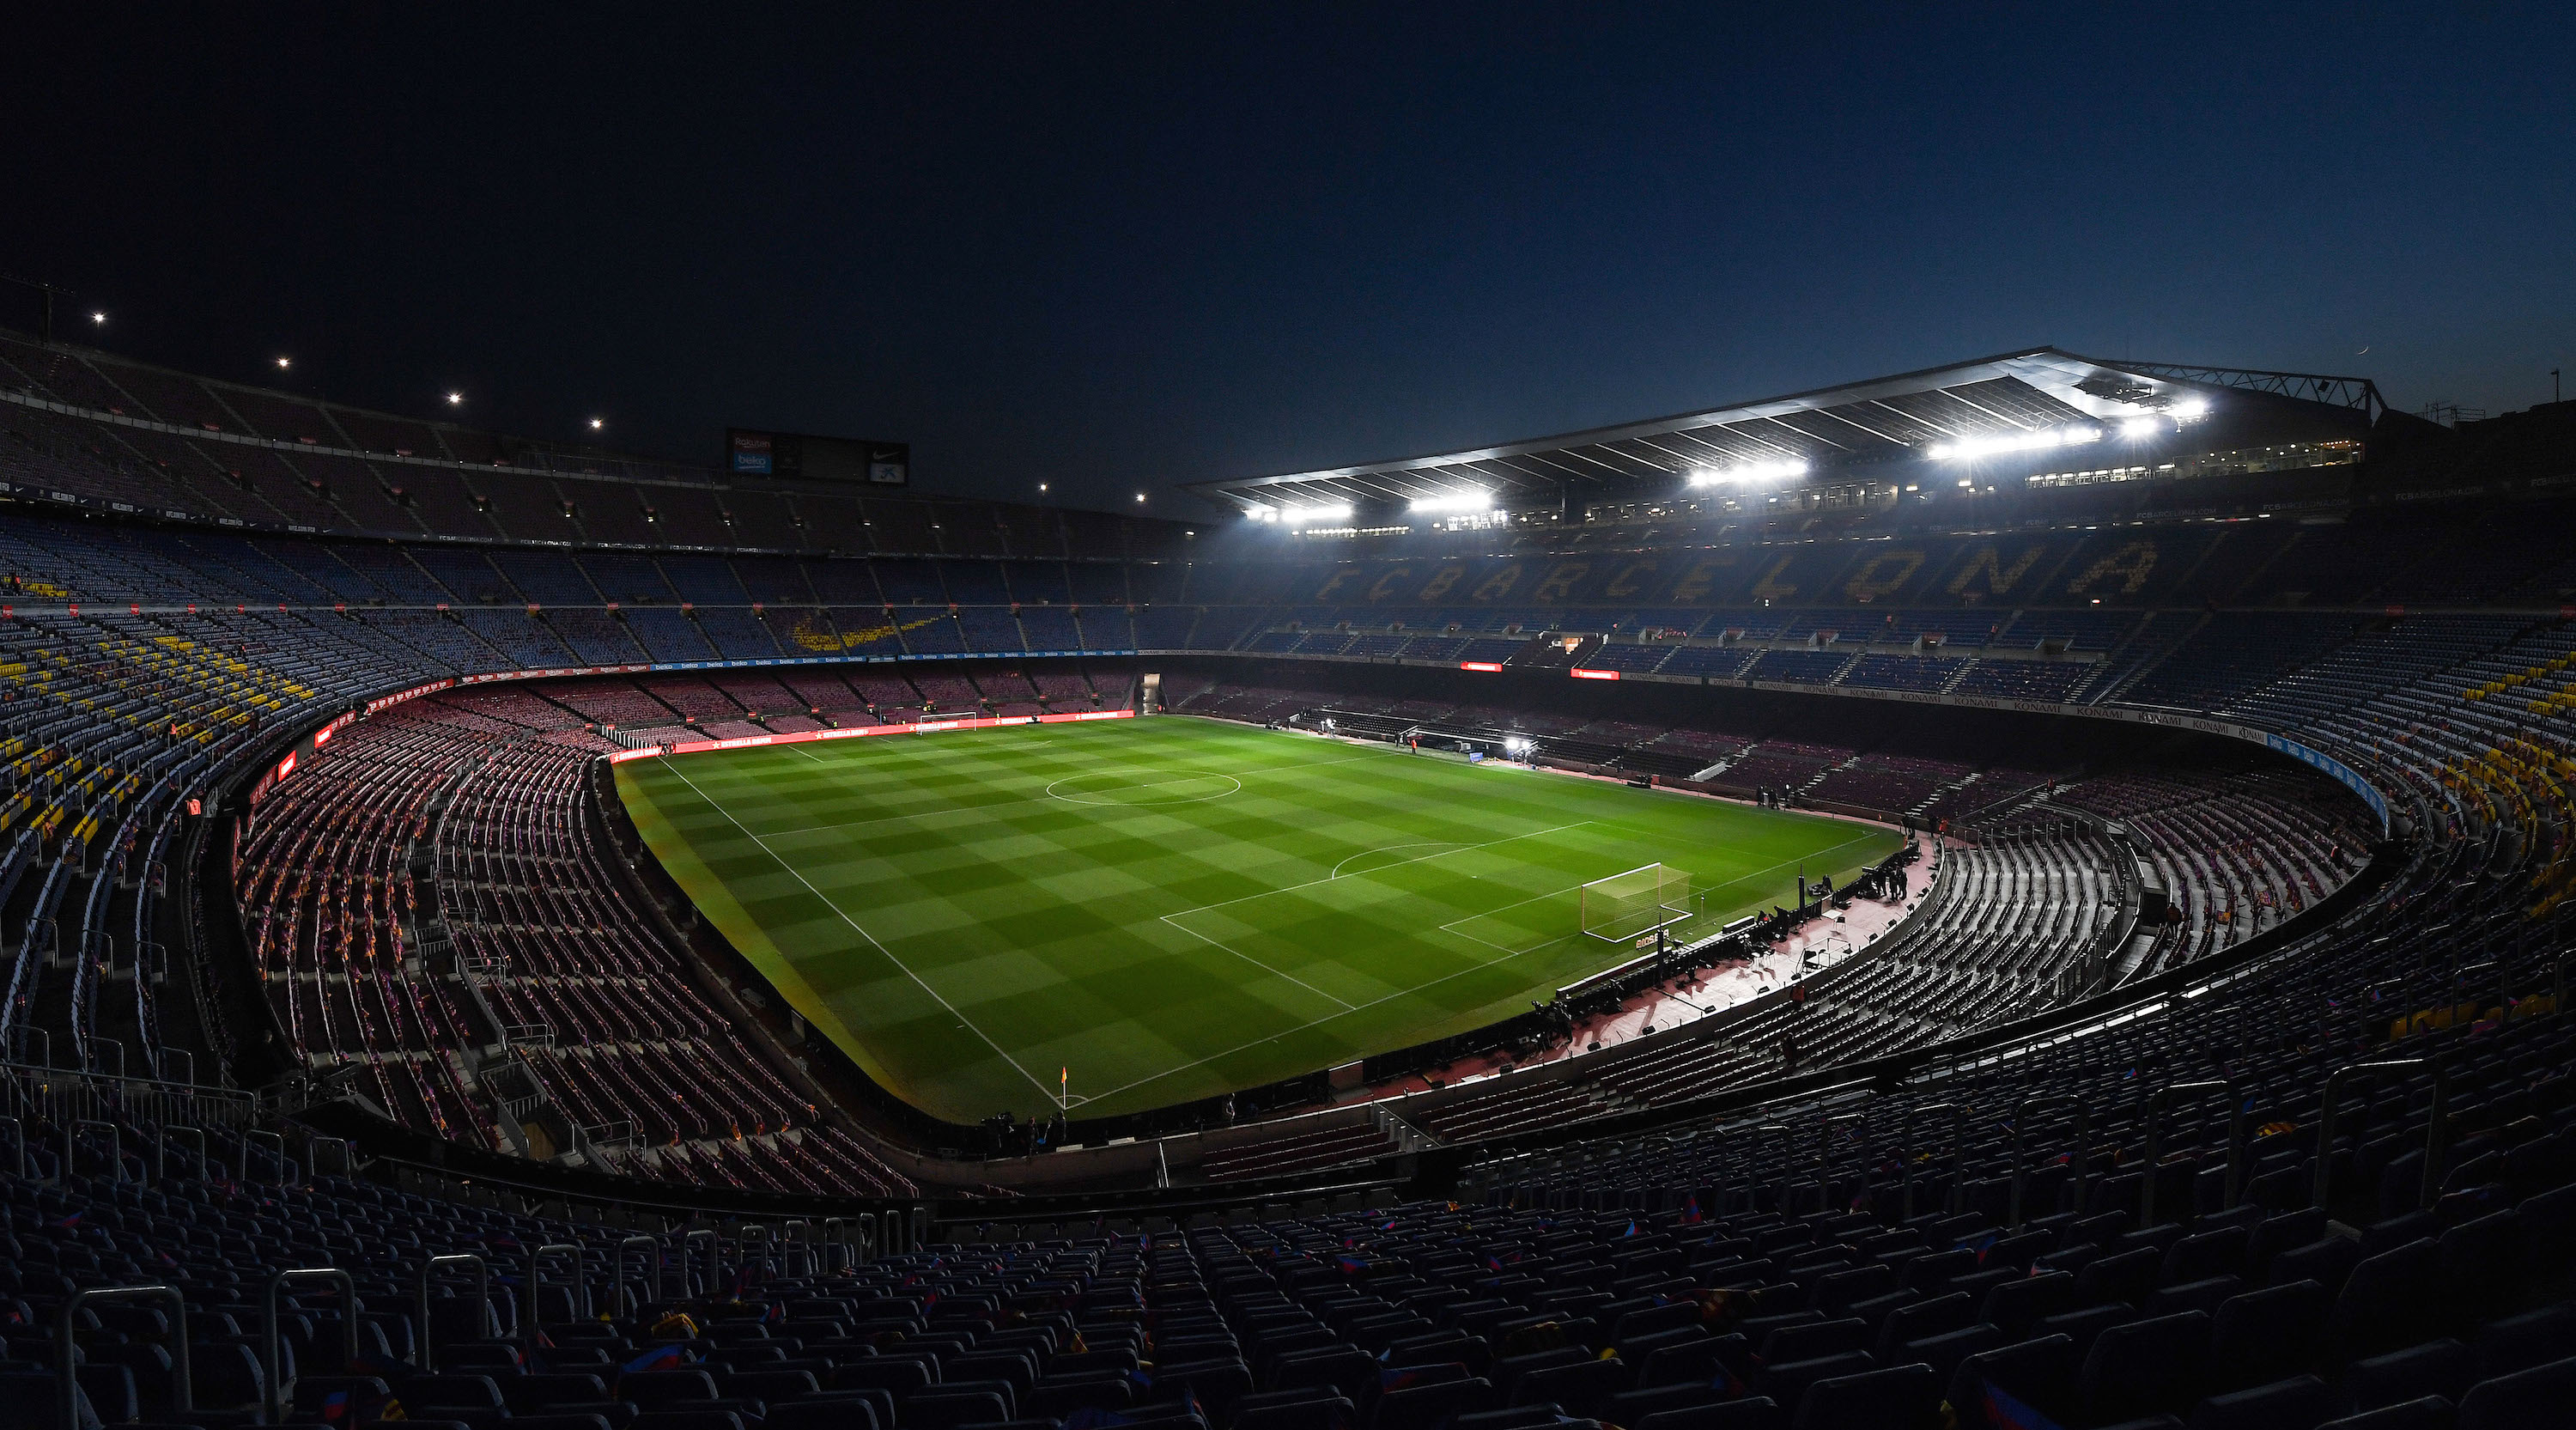 BARCELONA, SPAIN - FEBRUARY 06: A general view of the stadium prior to the Copa del Semi Final first leg match between Barcelona and Real Madrid at Nou Camp on February 06, 2019 in Barcelona, Spain. (Photo by Alex Caparros/Getty Images)